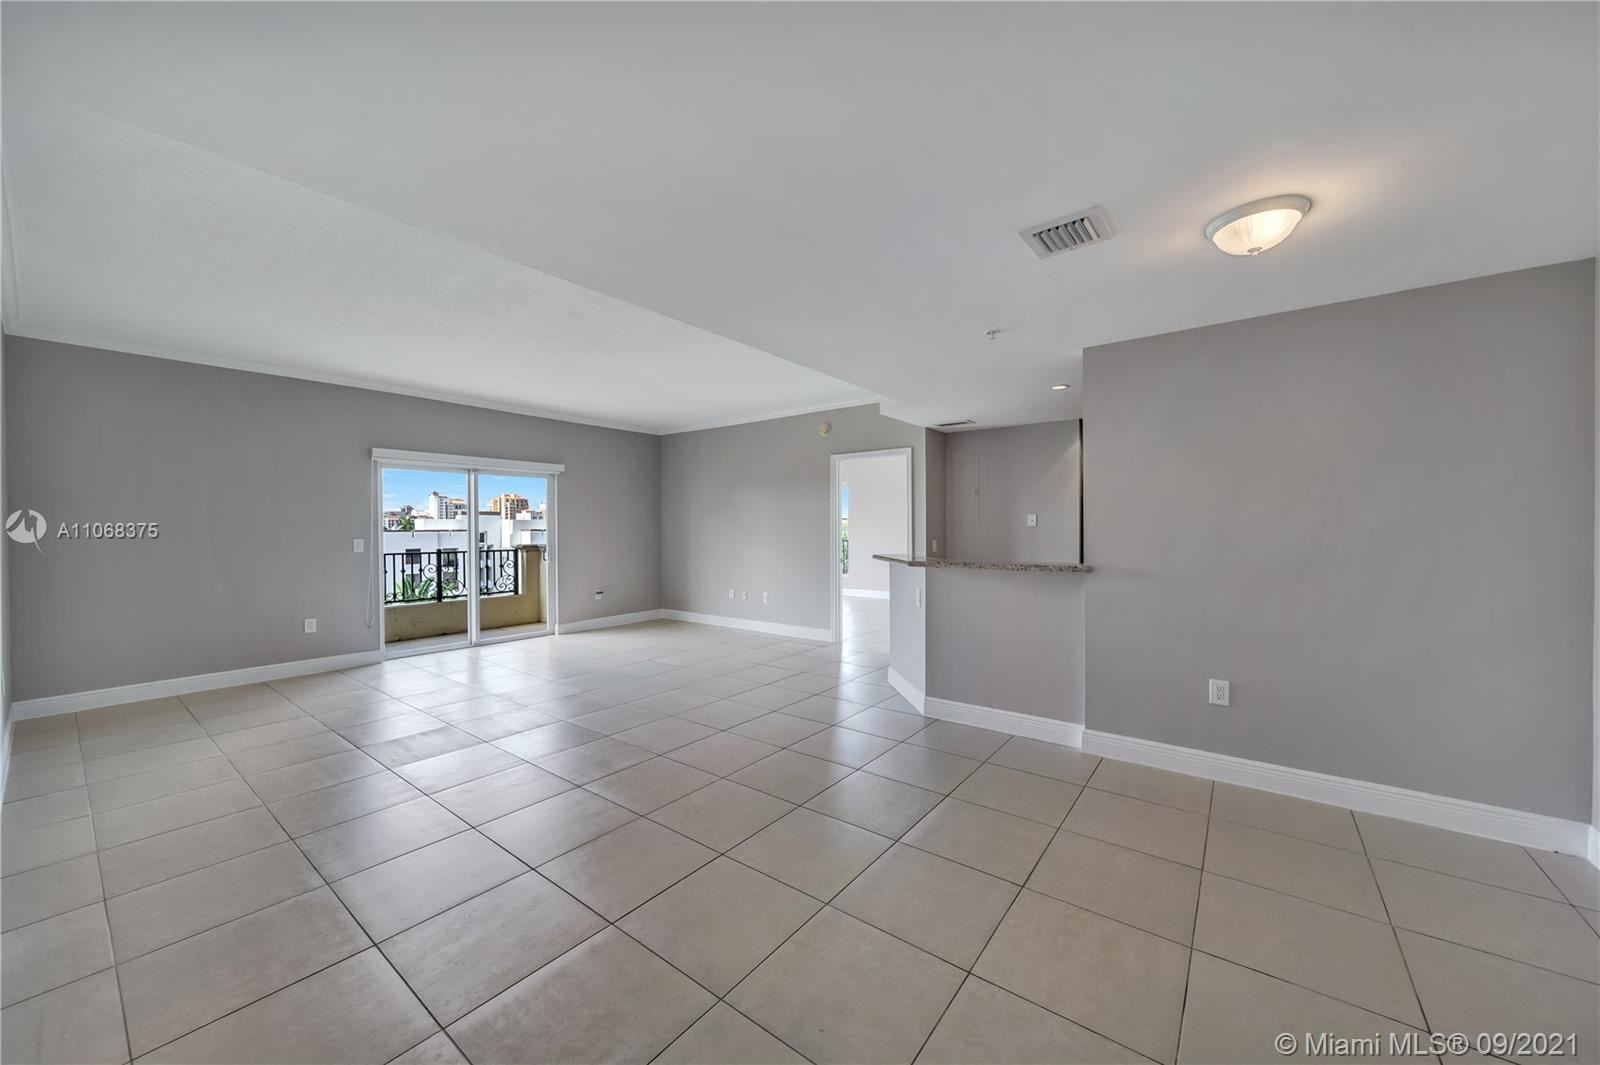 Photo of 20 S Calabria Ave #503, Coral Gables, FL 33134 (MLS # A11068375)